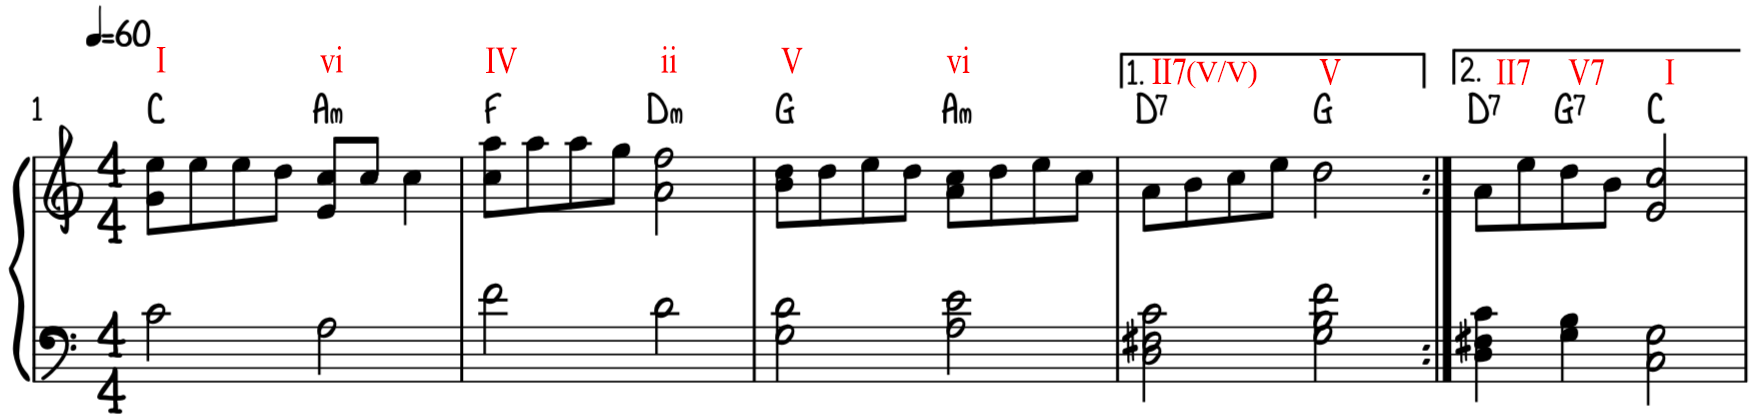 Basic Melody and chords for pop piano with roman numeral analysis based on the key of C